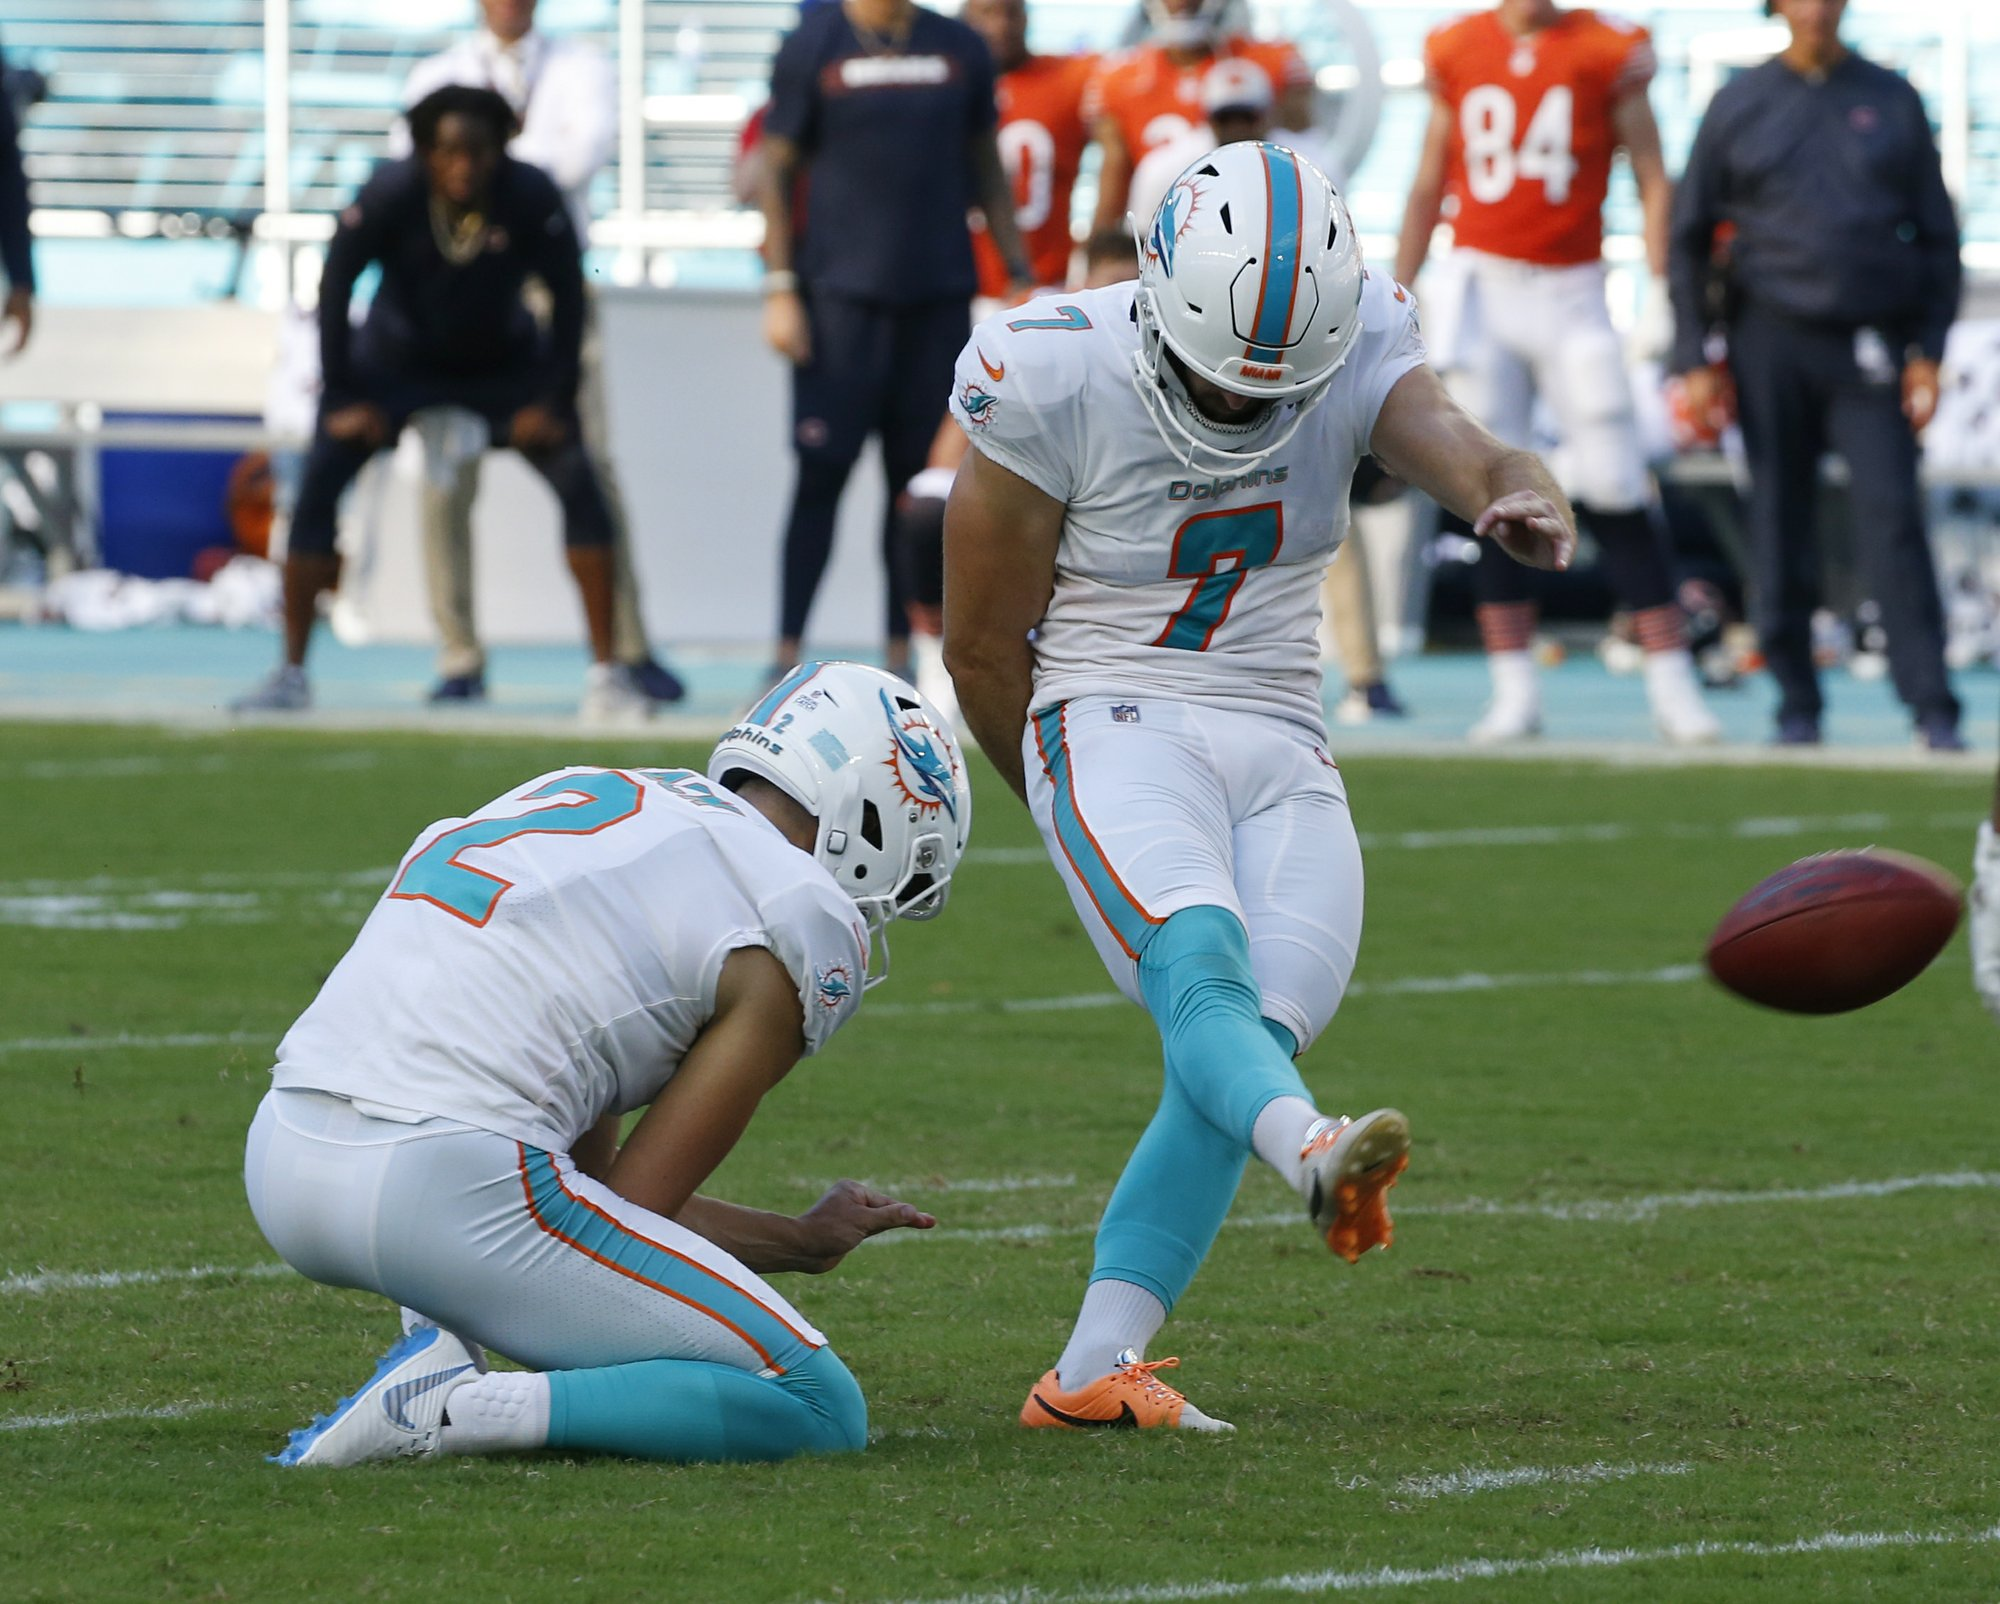 Sanders kicks FG as Dolphins rally past Bears 31-28 in OT